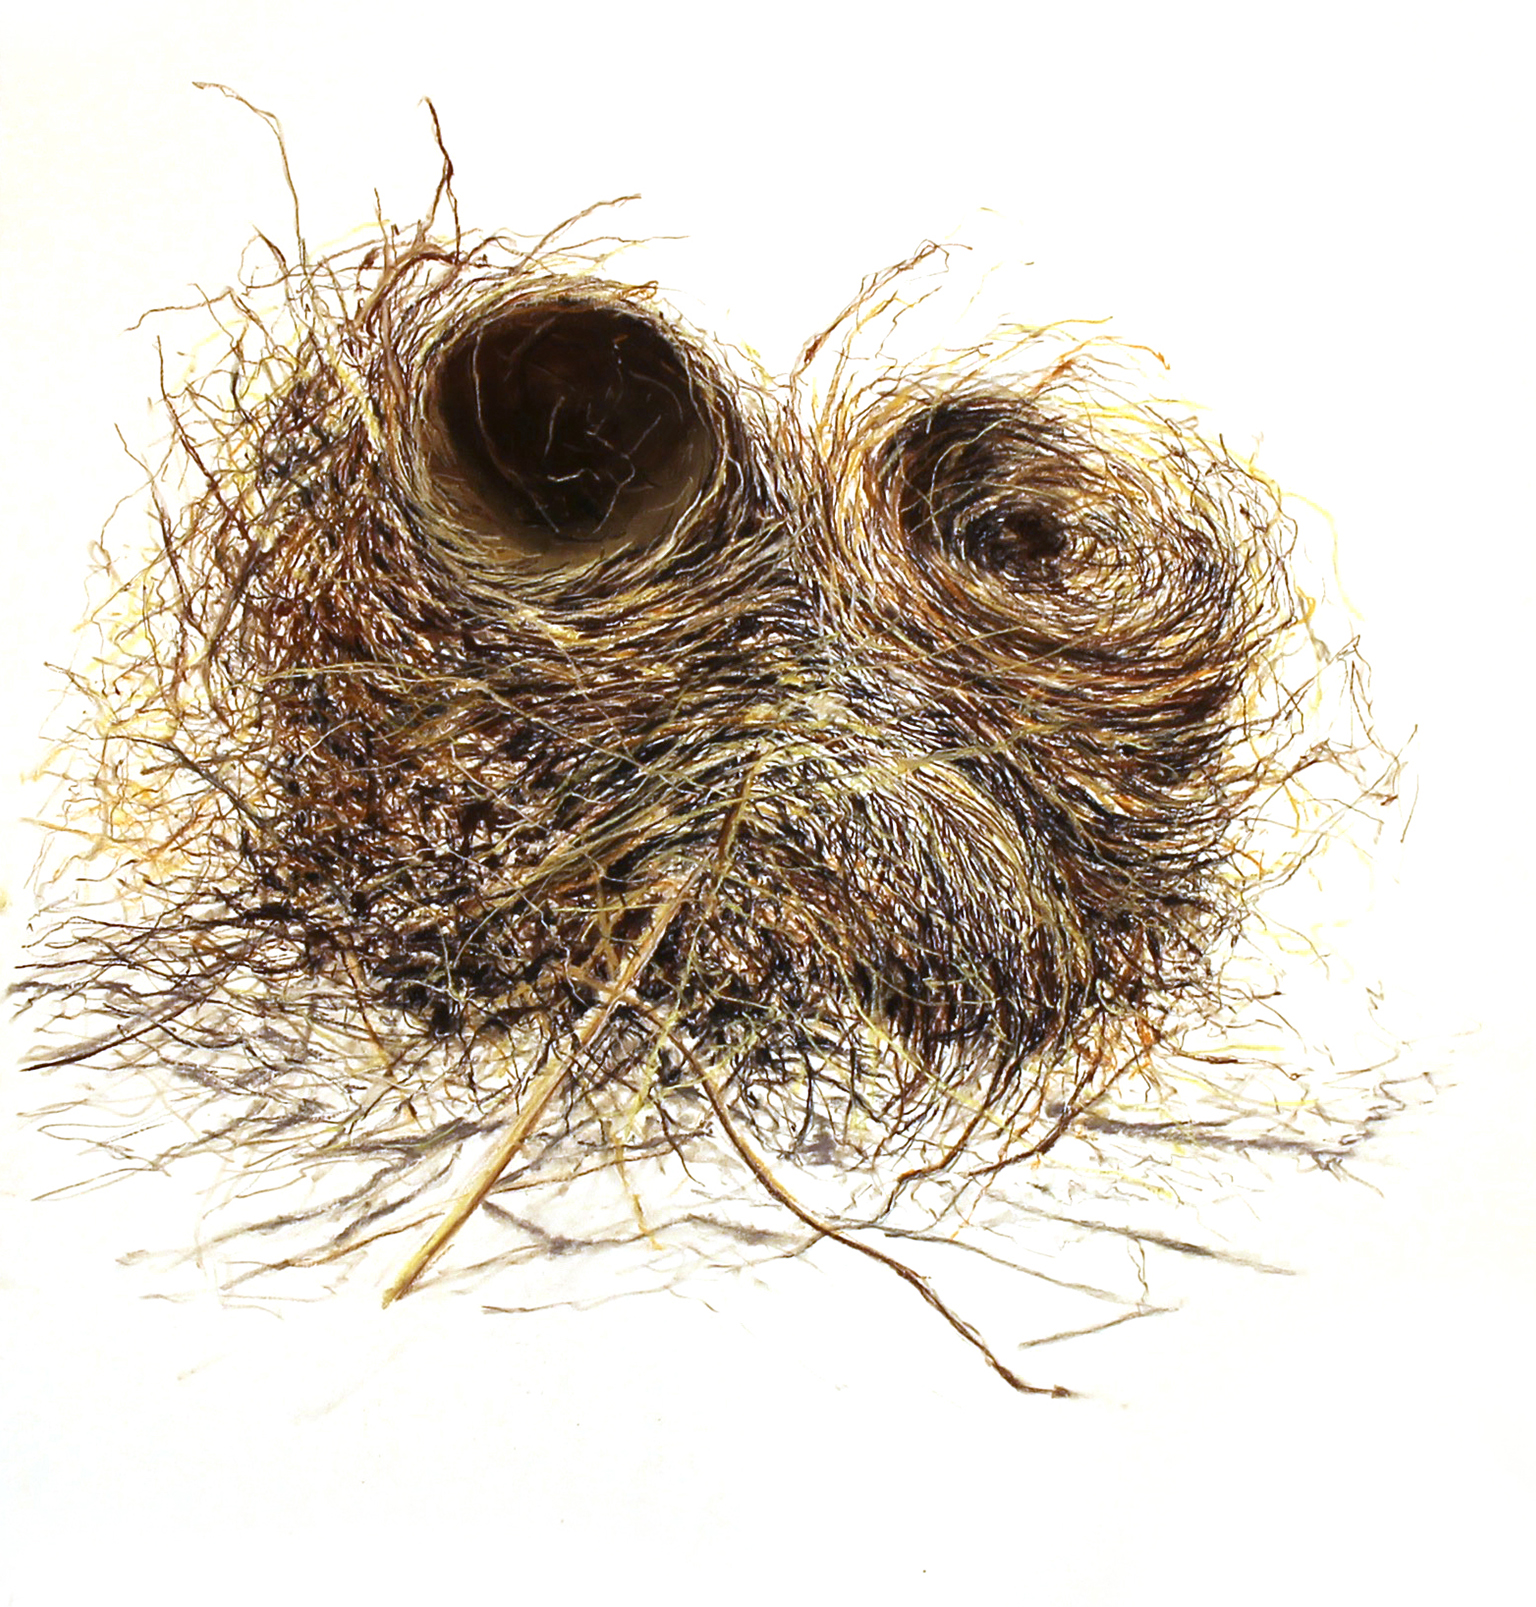 Mrs. Robin's Double Nest, conte and charcoal on paper. 2016